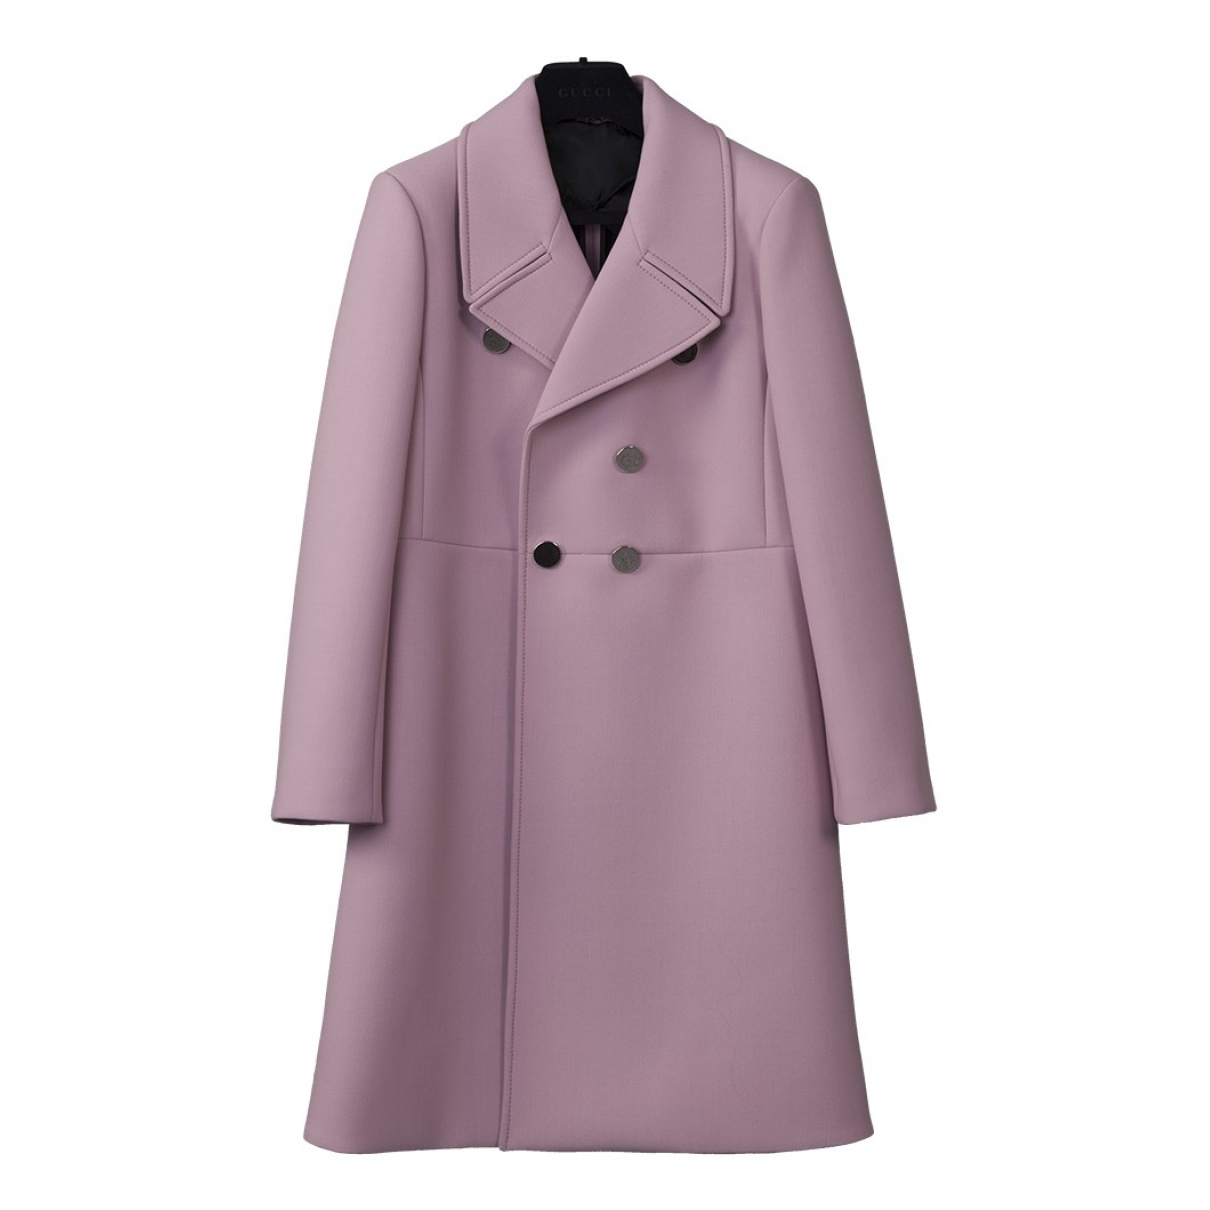 Gucci N Pink Wool coat for Women 38 FR